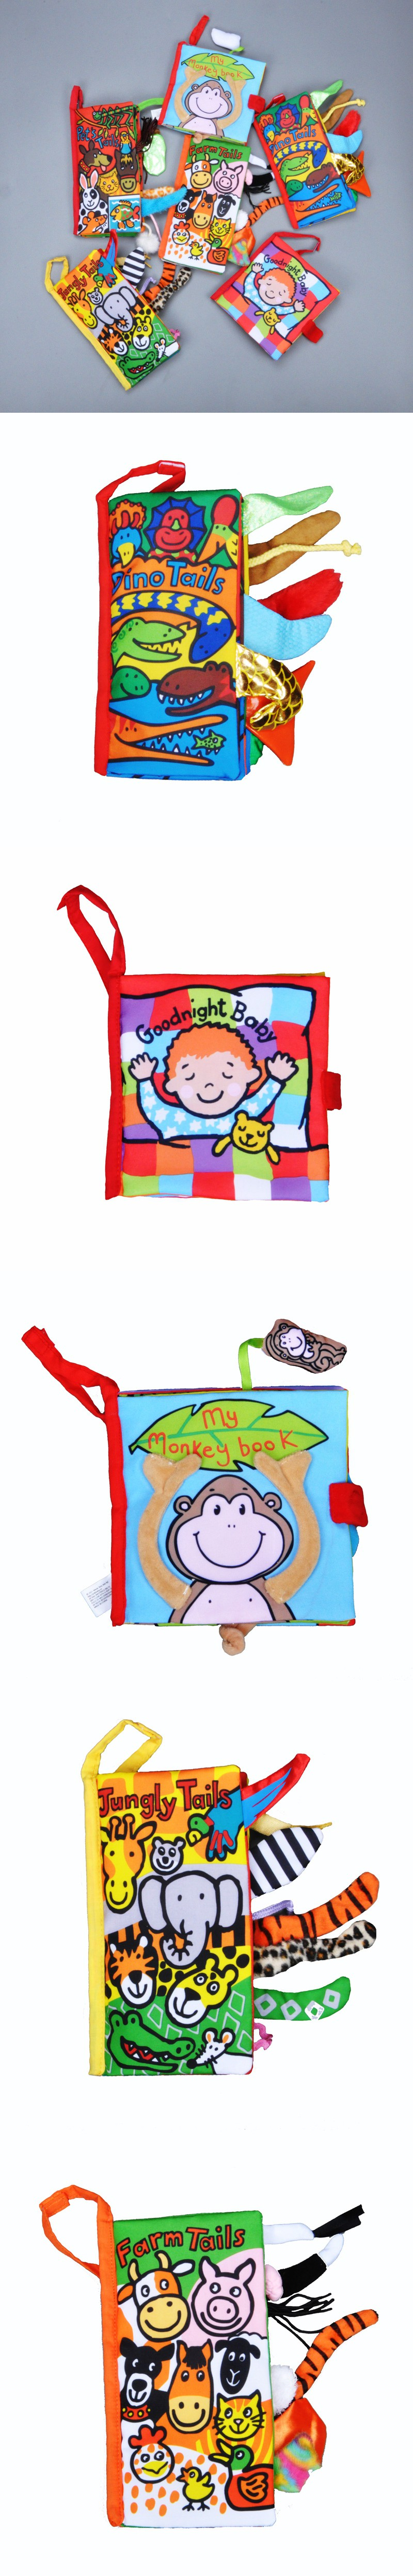 6pcs style Book English Baby Learning Education Books cartoon pet